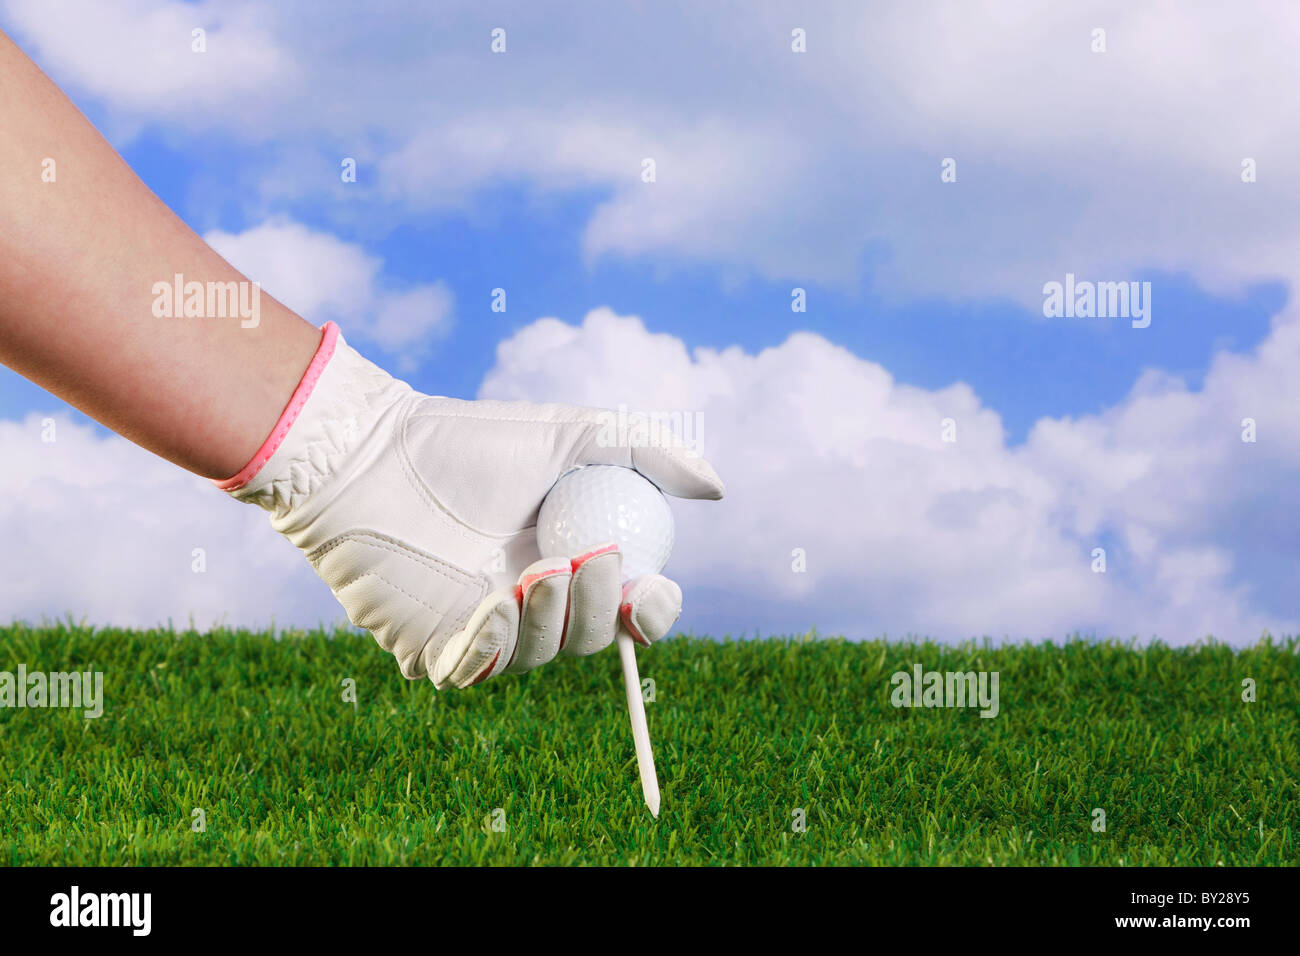 Photo of a ladies hand in white and pink glove placing a golf ball and tee into grass. - Stock Image